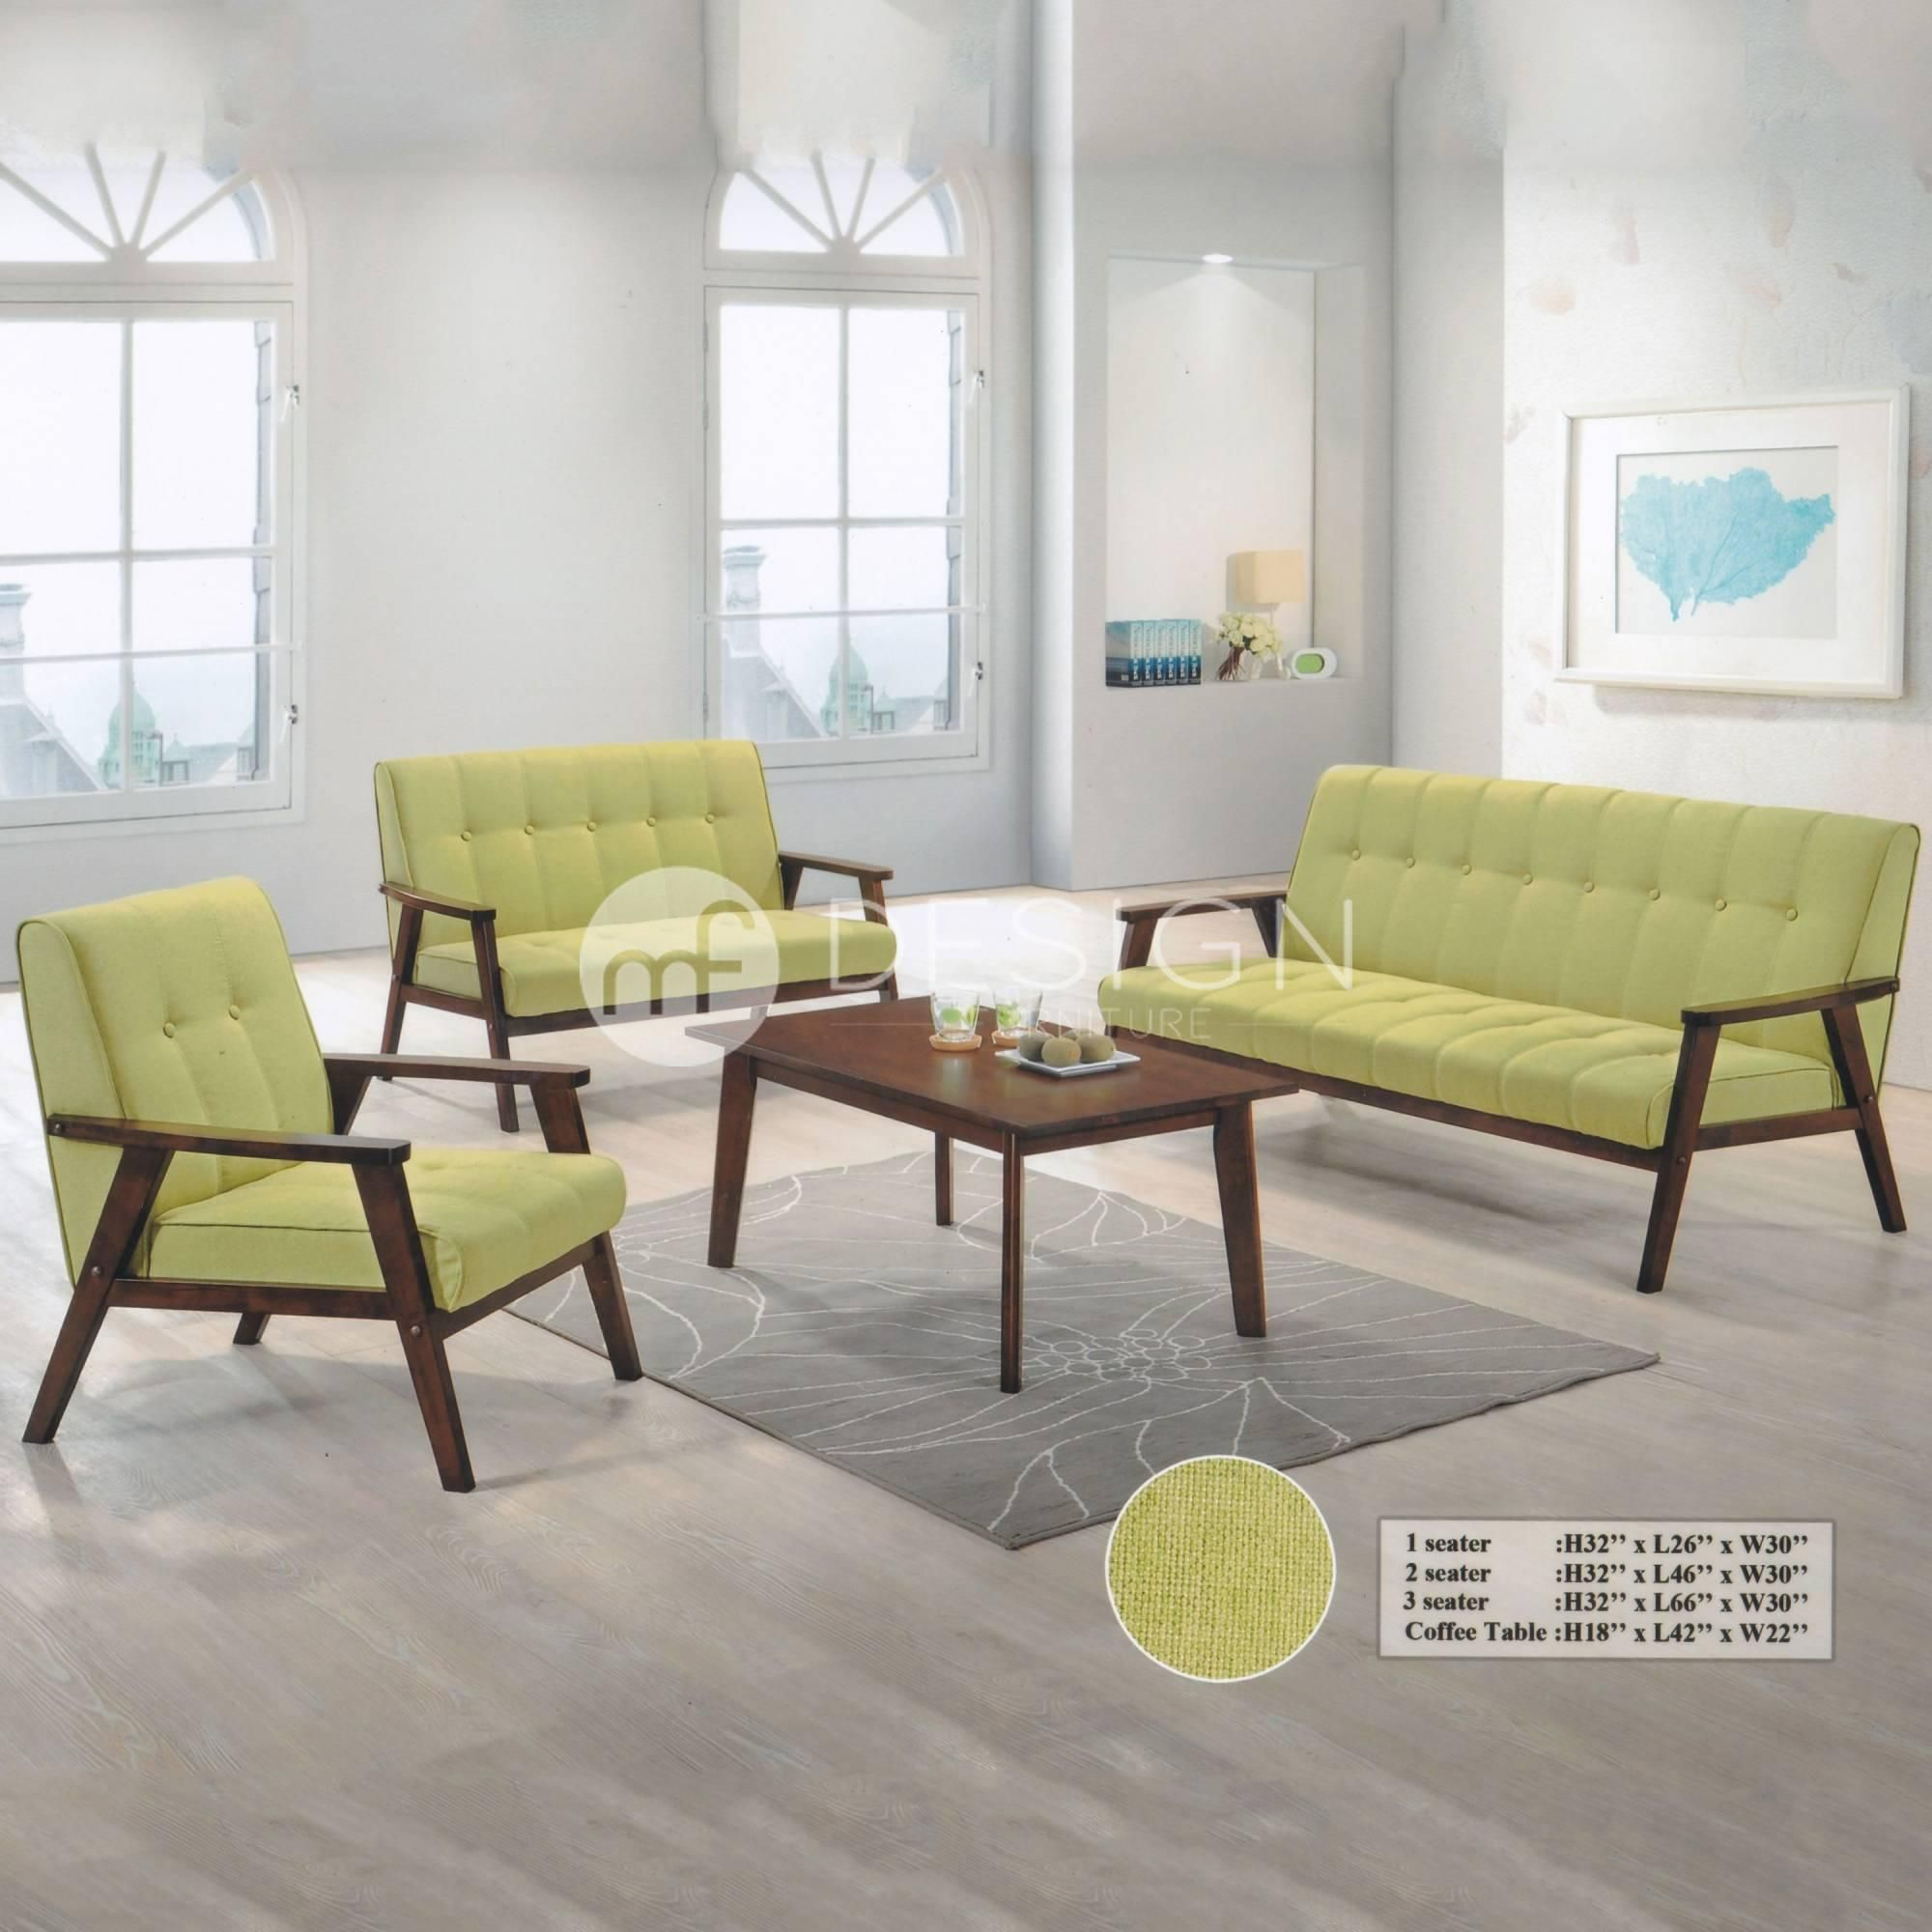 NORDIC 1 2 3 TABLE ANTIQUE SOFA SET GREEN